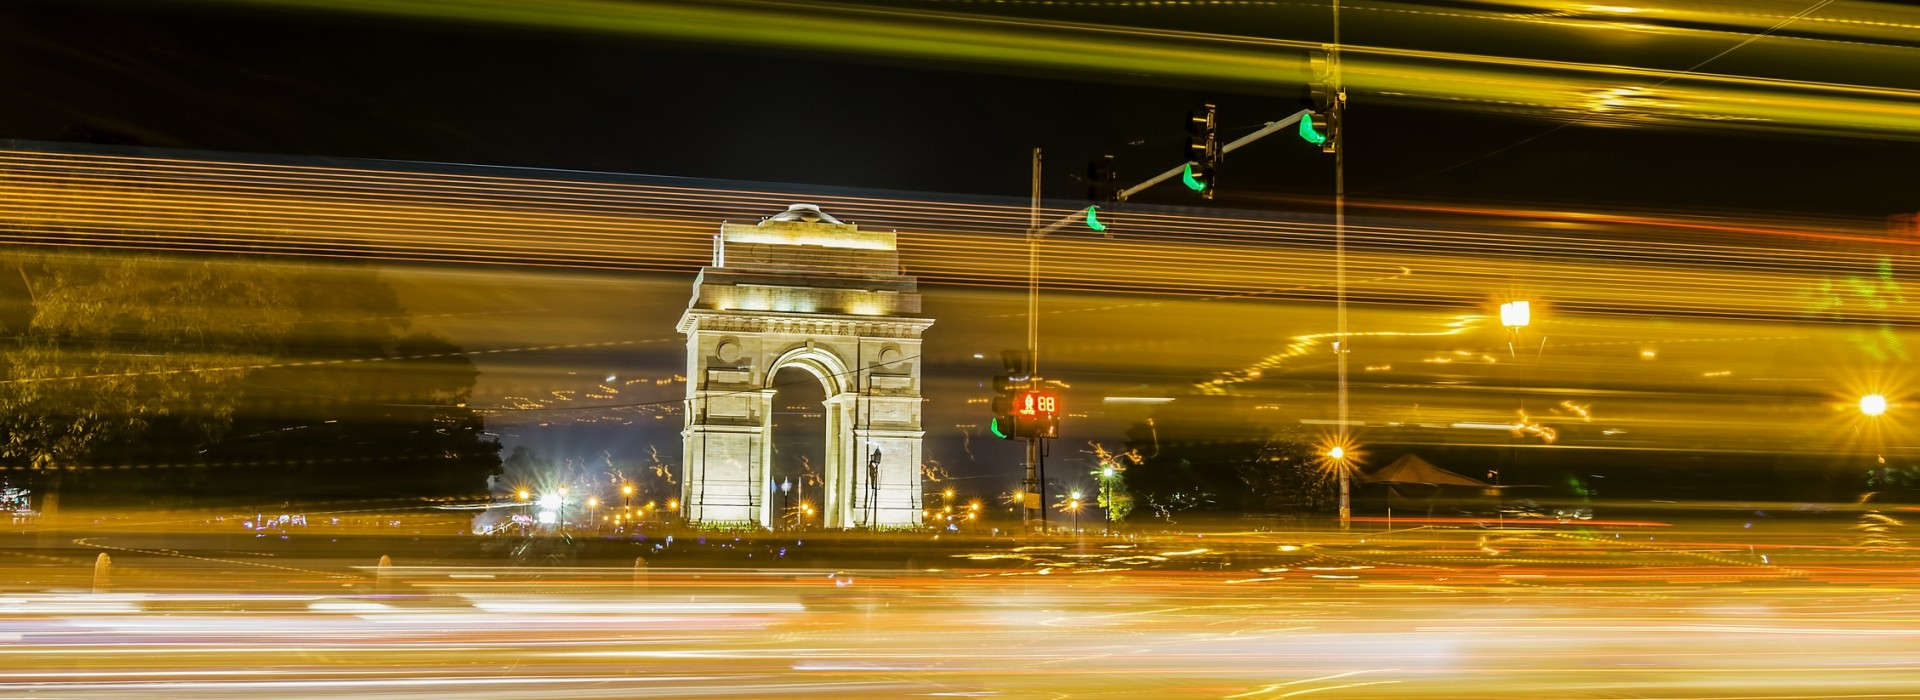 Delhi Tours and Holidays 2018/2019